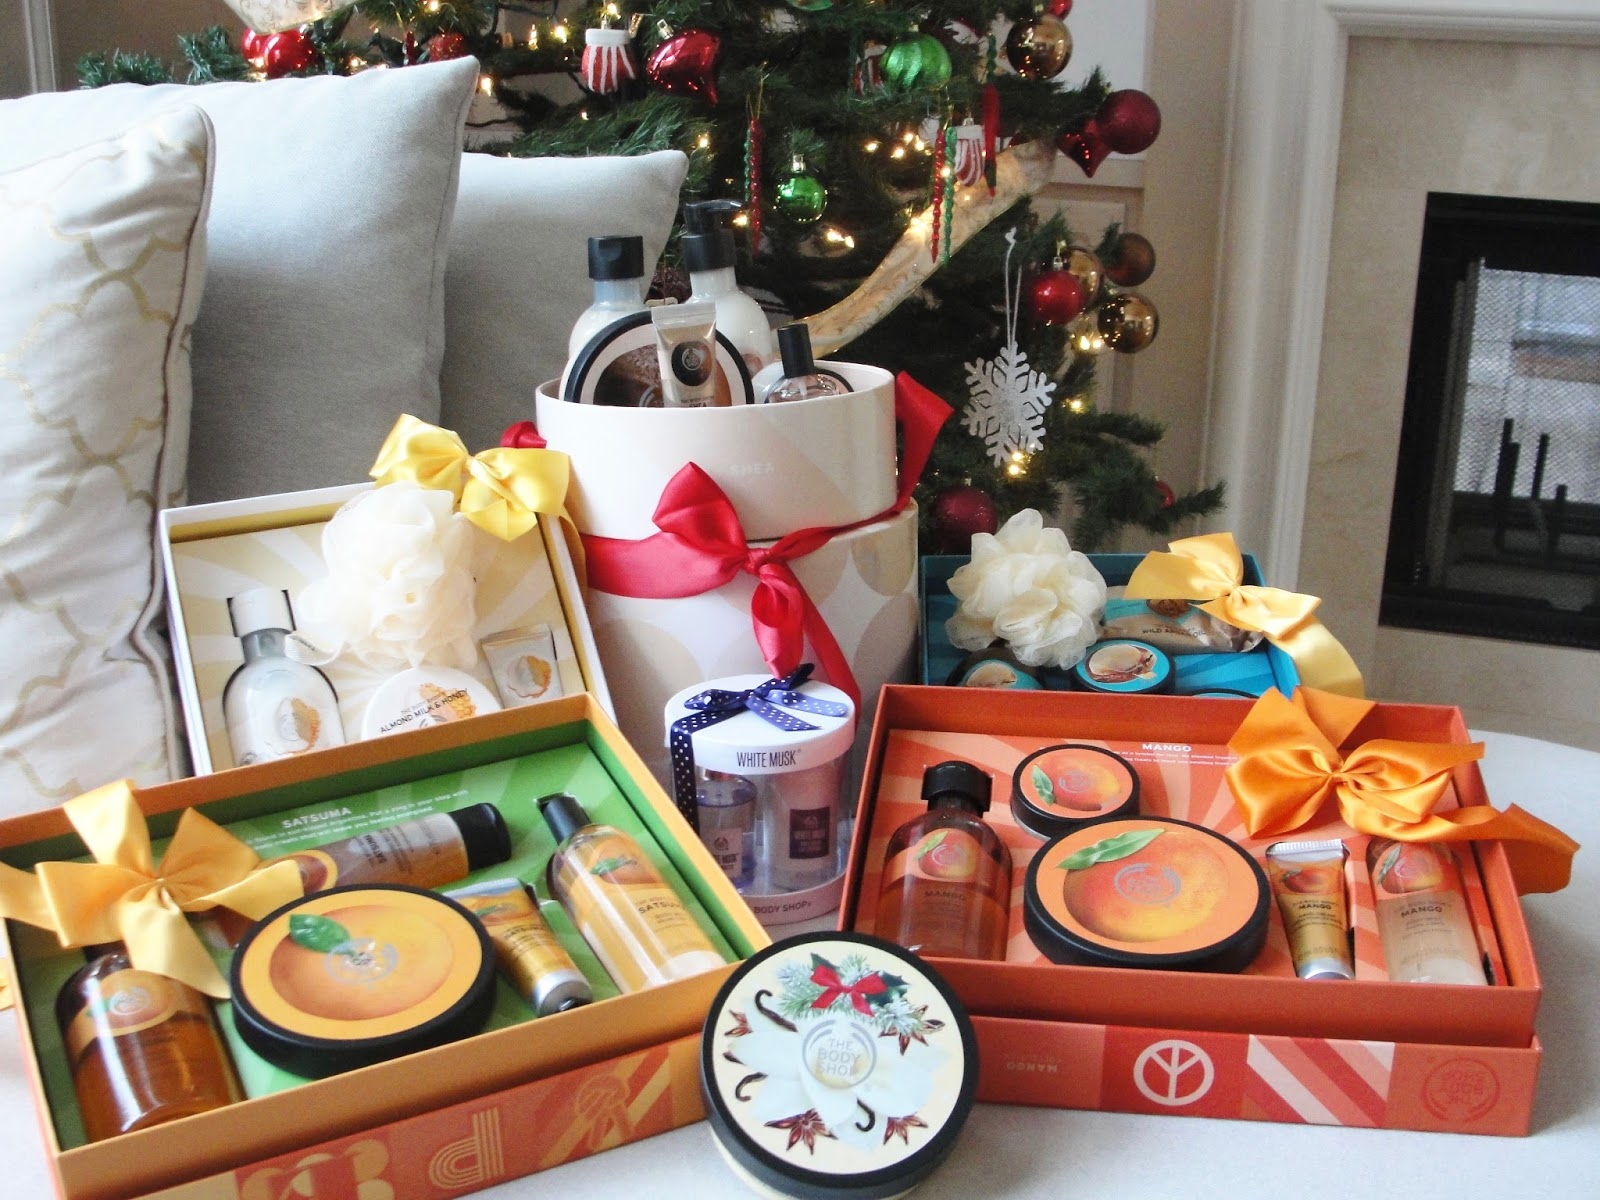 BEST CHRISTMAS GIFTS FROM THE BODY SHOP!